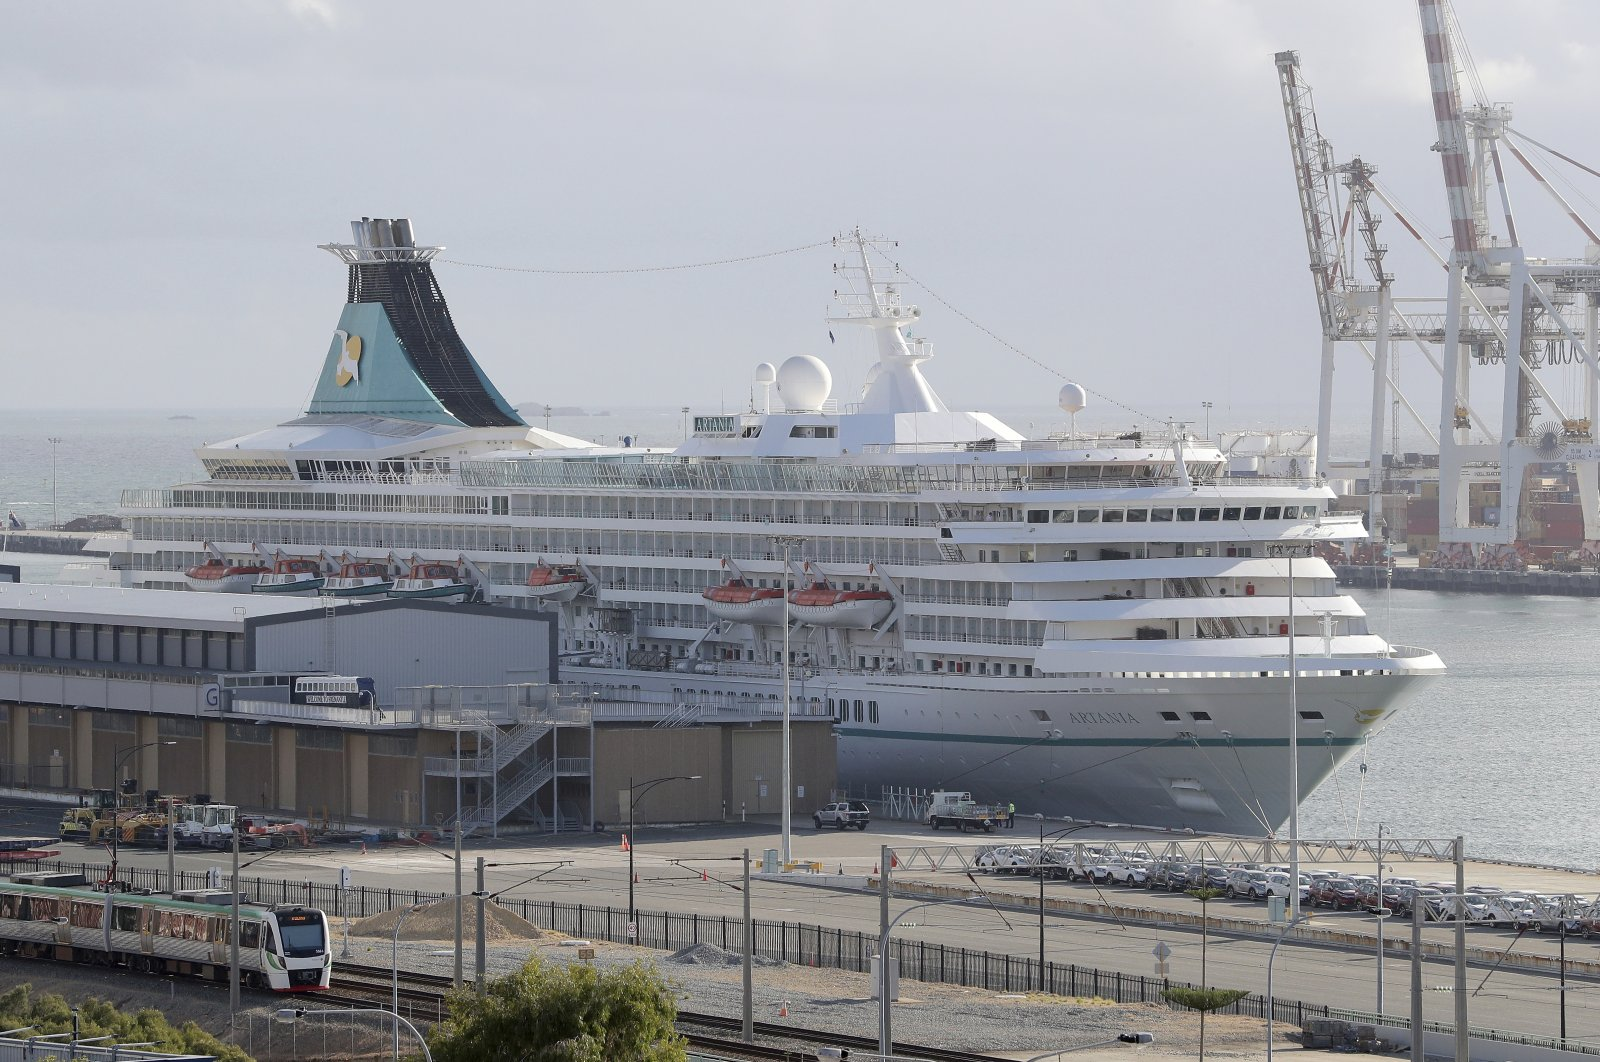 This photo shows the cruise ship Artania docked at Fremantle harbour in Fremantle, Australia on Friday, March 27, 2020. (AAP Image via AP)